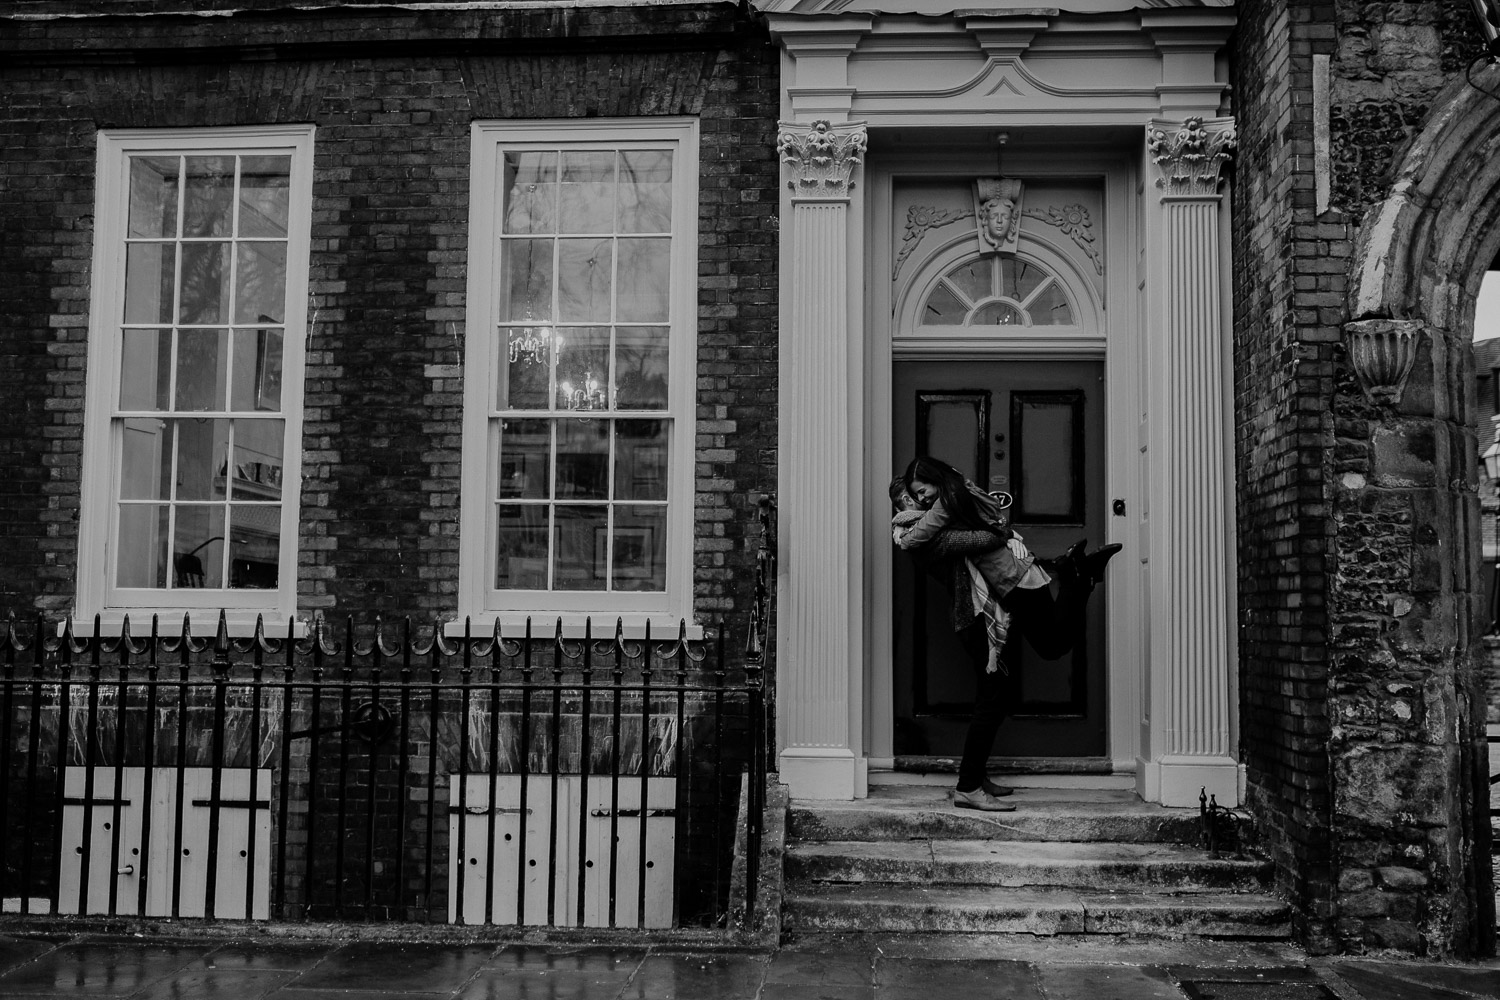 london streets, london architecture, london houses, london couple shooting, london couple photographer, london wedding photographer, urbanes paarshooting in london, urbanes paarshooting, urban couple shooting, london wedding photographer, hochzeitsfotograf london, street photography